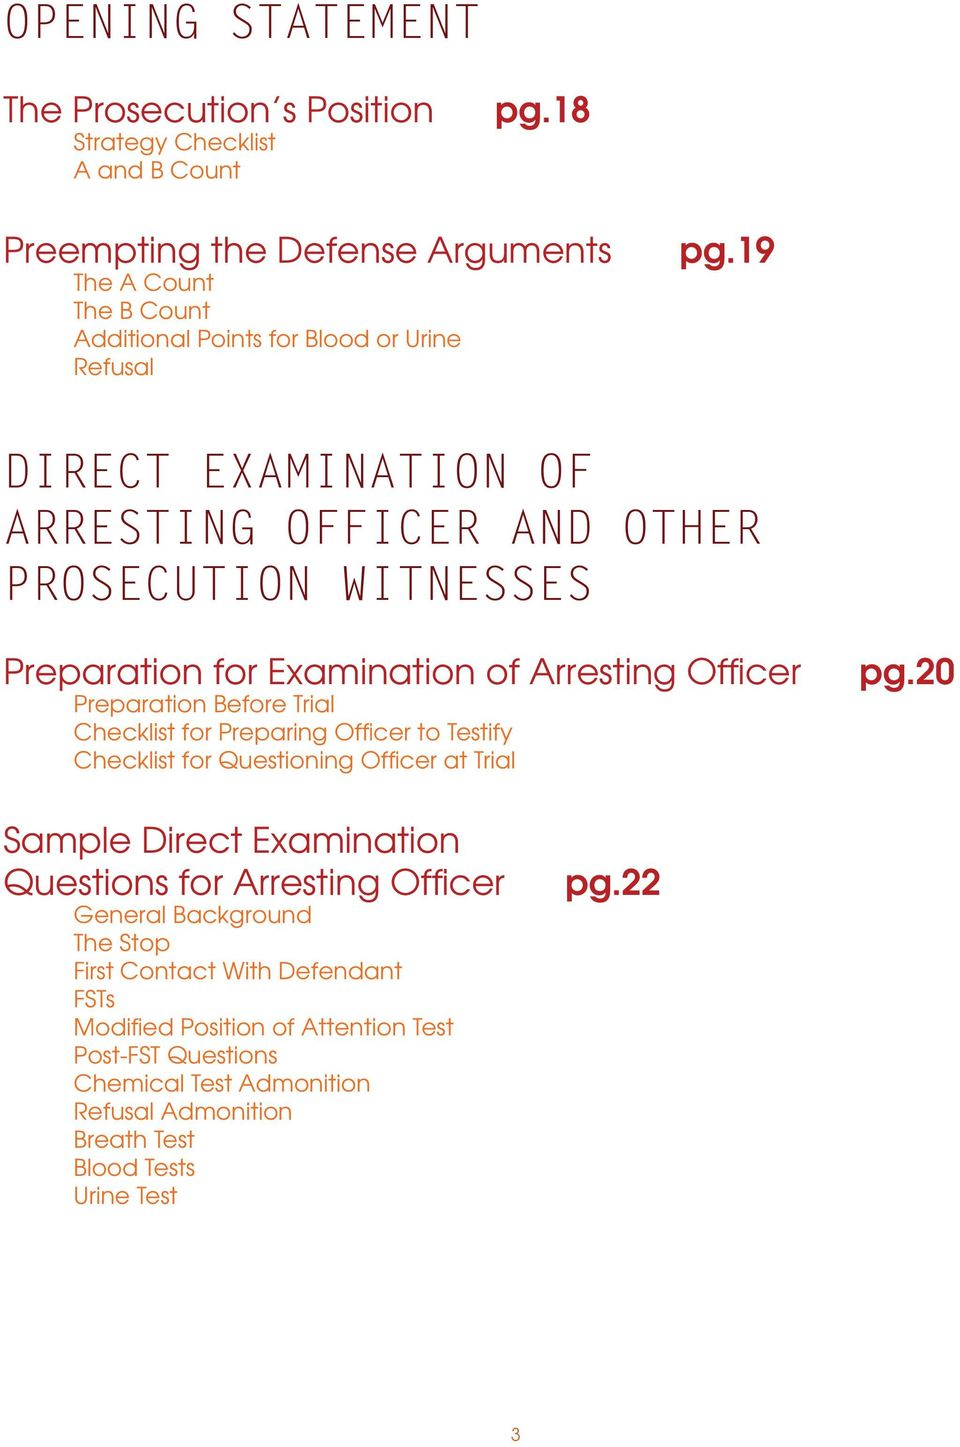 19 DIRECT EXAMINATION OF ARRESTING OFFICER AND OTHER PROSECUTION WITNESSES Preparation for Examination of Arresting Offi cer Preparation Before Trial Checklist for Preparing